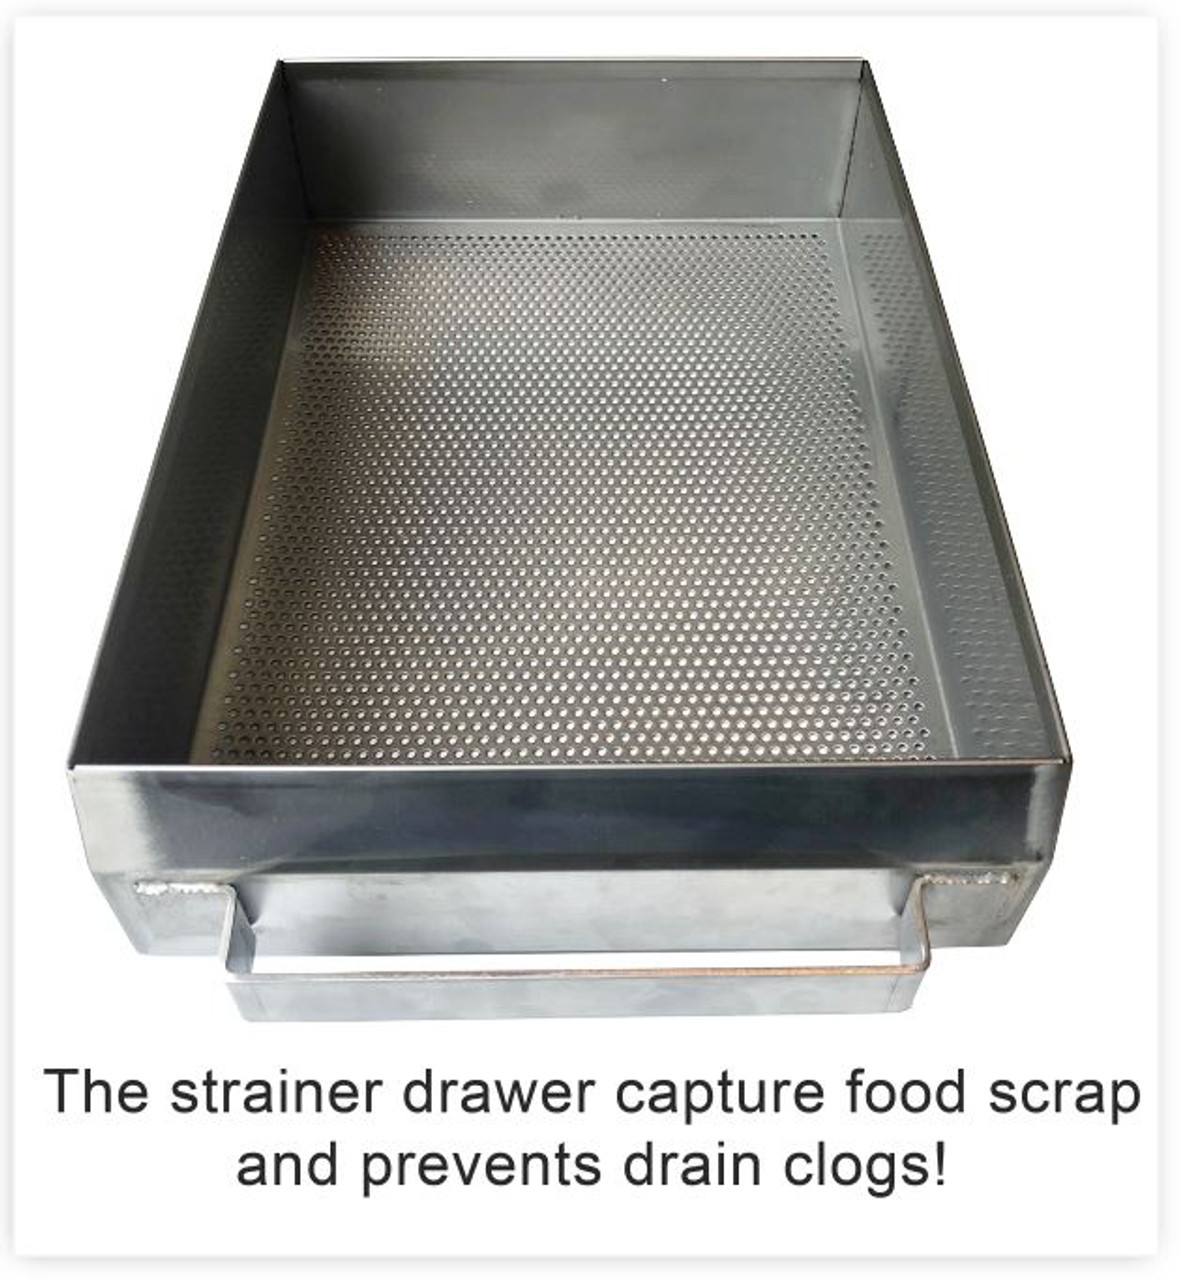 New Sink Strainer Filter Anti Clog Trash Disposable Drain Mesh Net